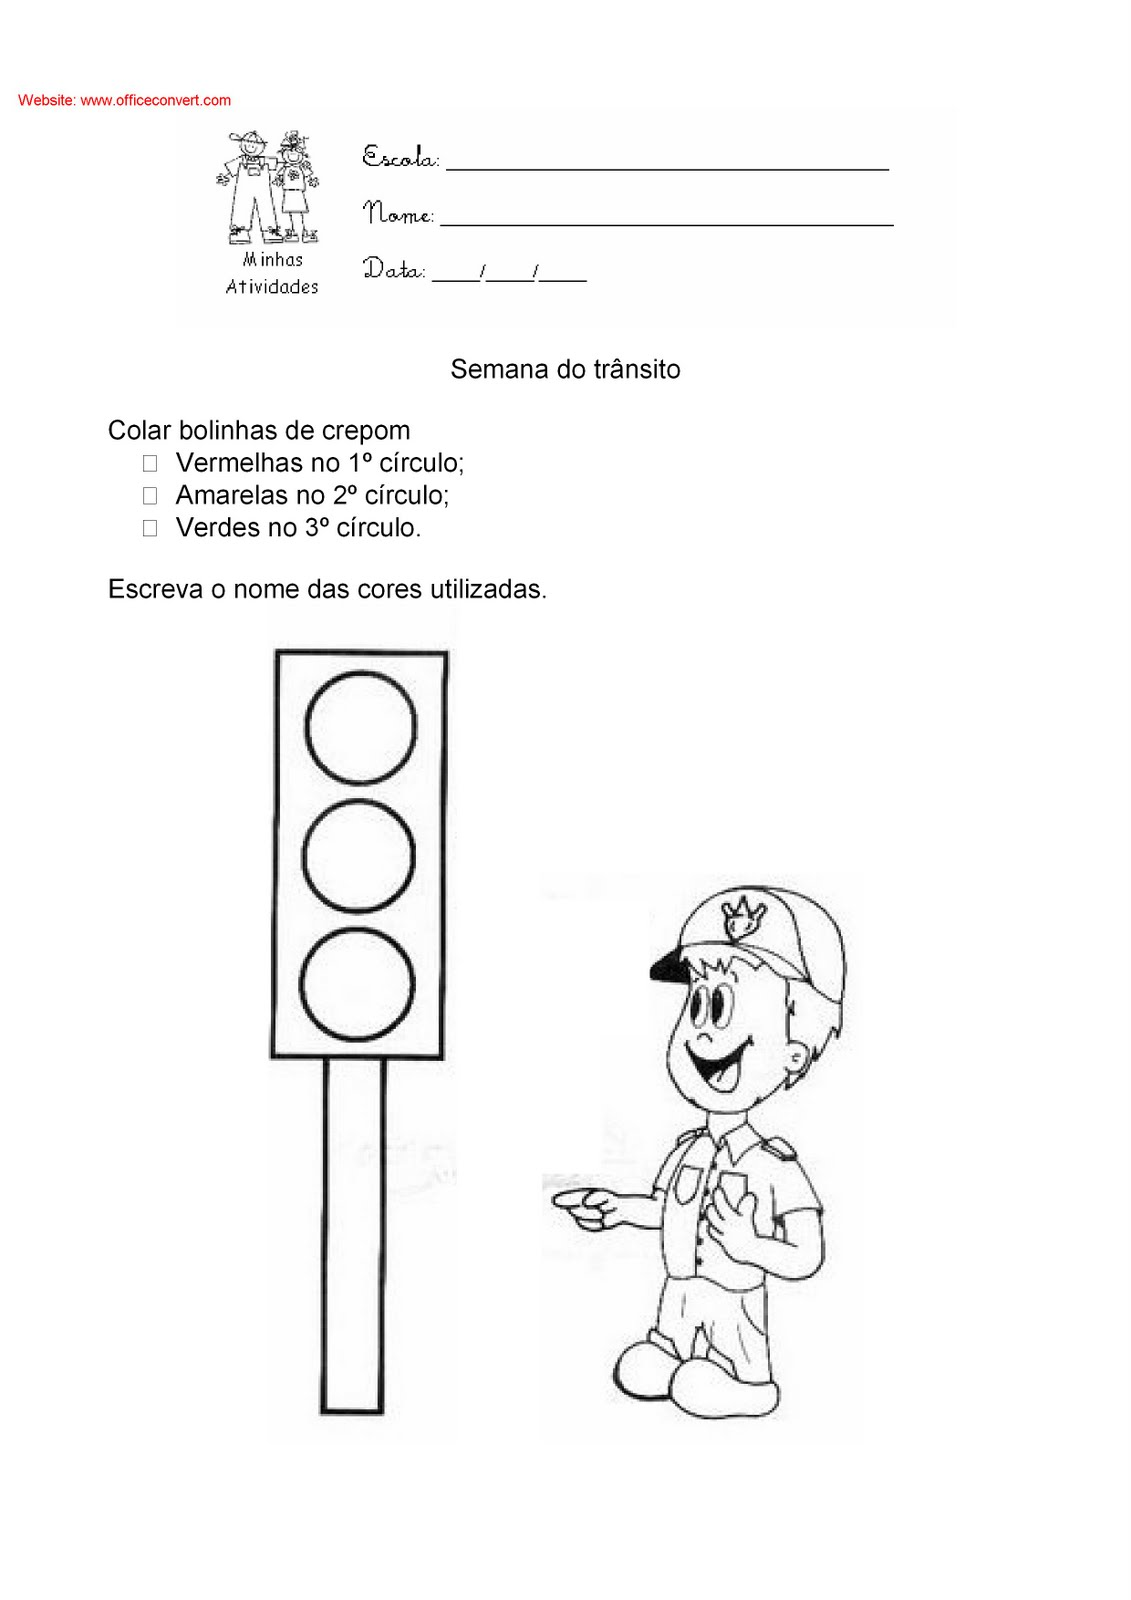 Frasco Para Inject C3 A1veis E A Seringa De Desenho Gm501355204 81114147 further Gamebook Friday Herald Of Oblivion And additionally Familia De Buhos Dibujo Para Colorear E Imprimir as well Syringe Clipart Black And White in addition 3266. on vial clipart